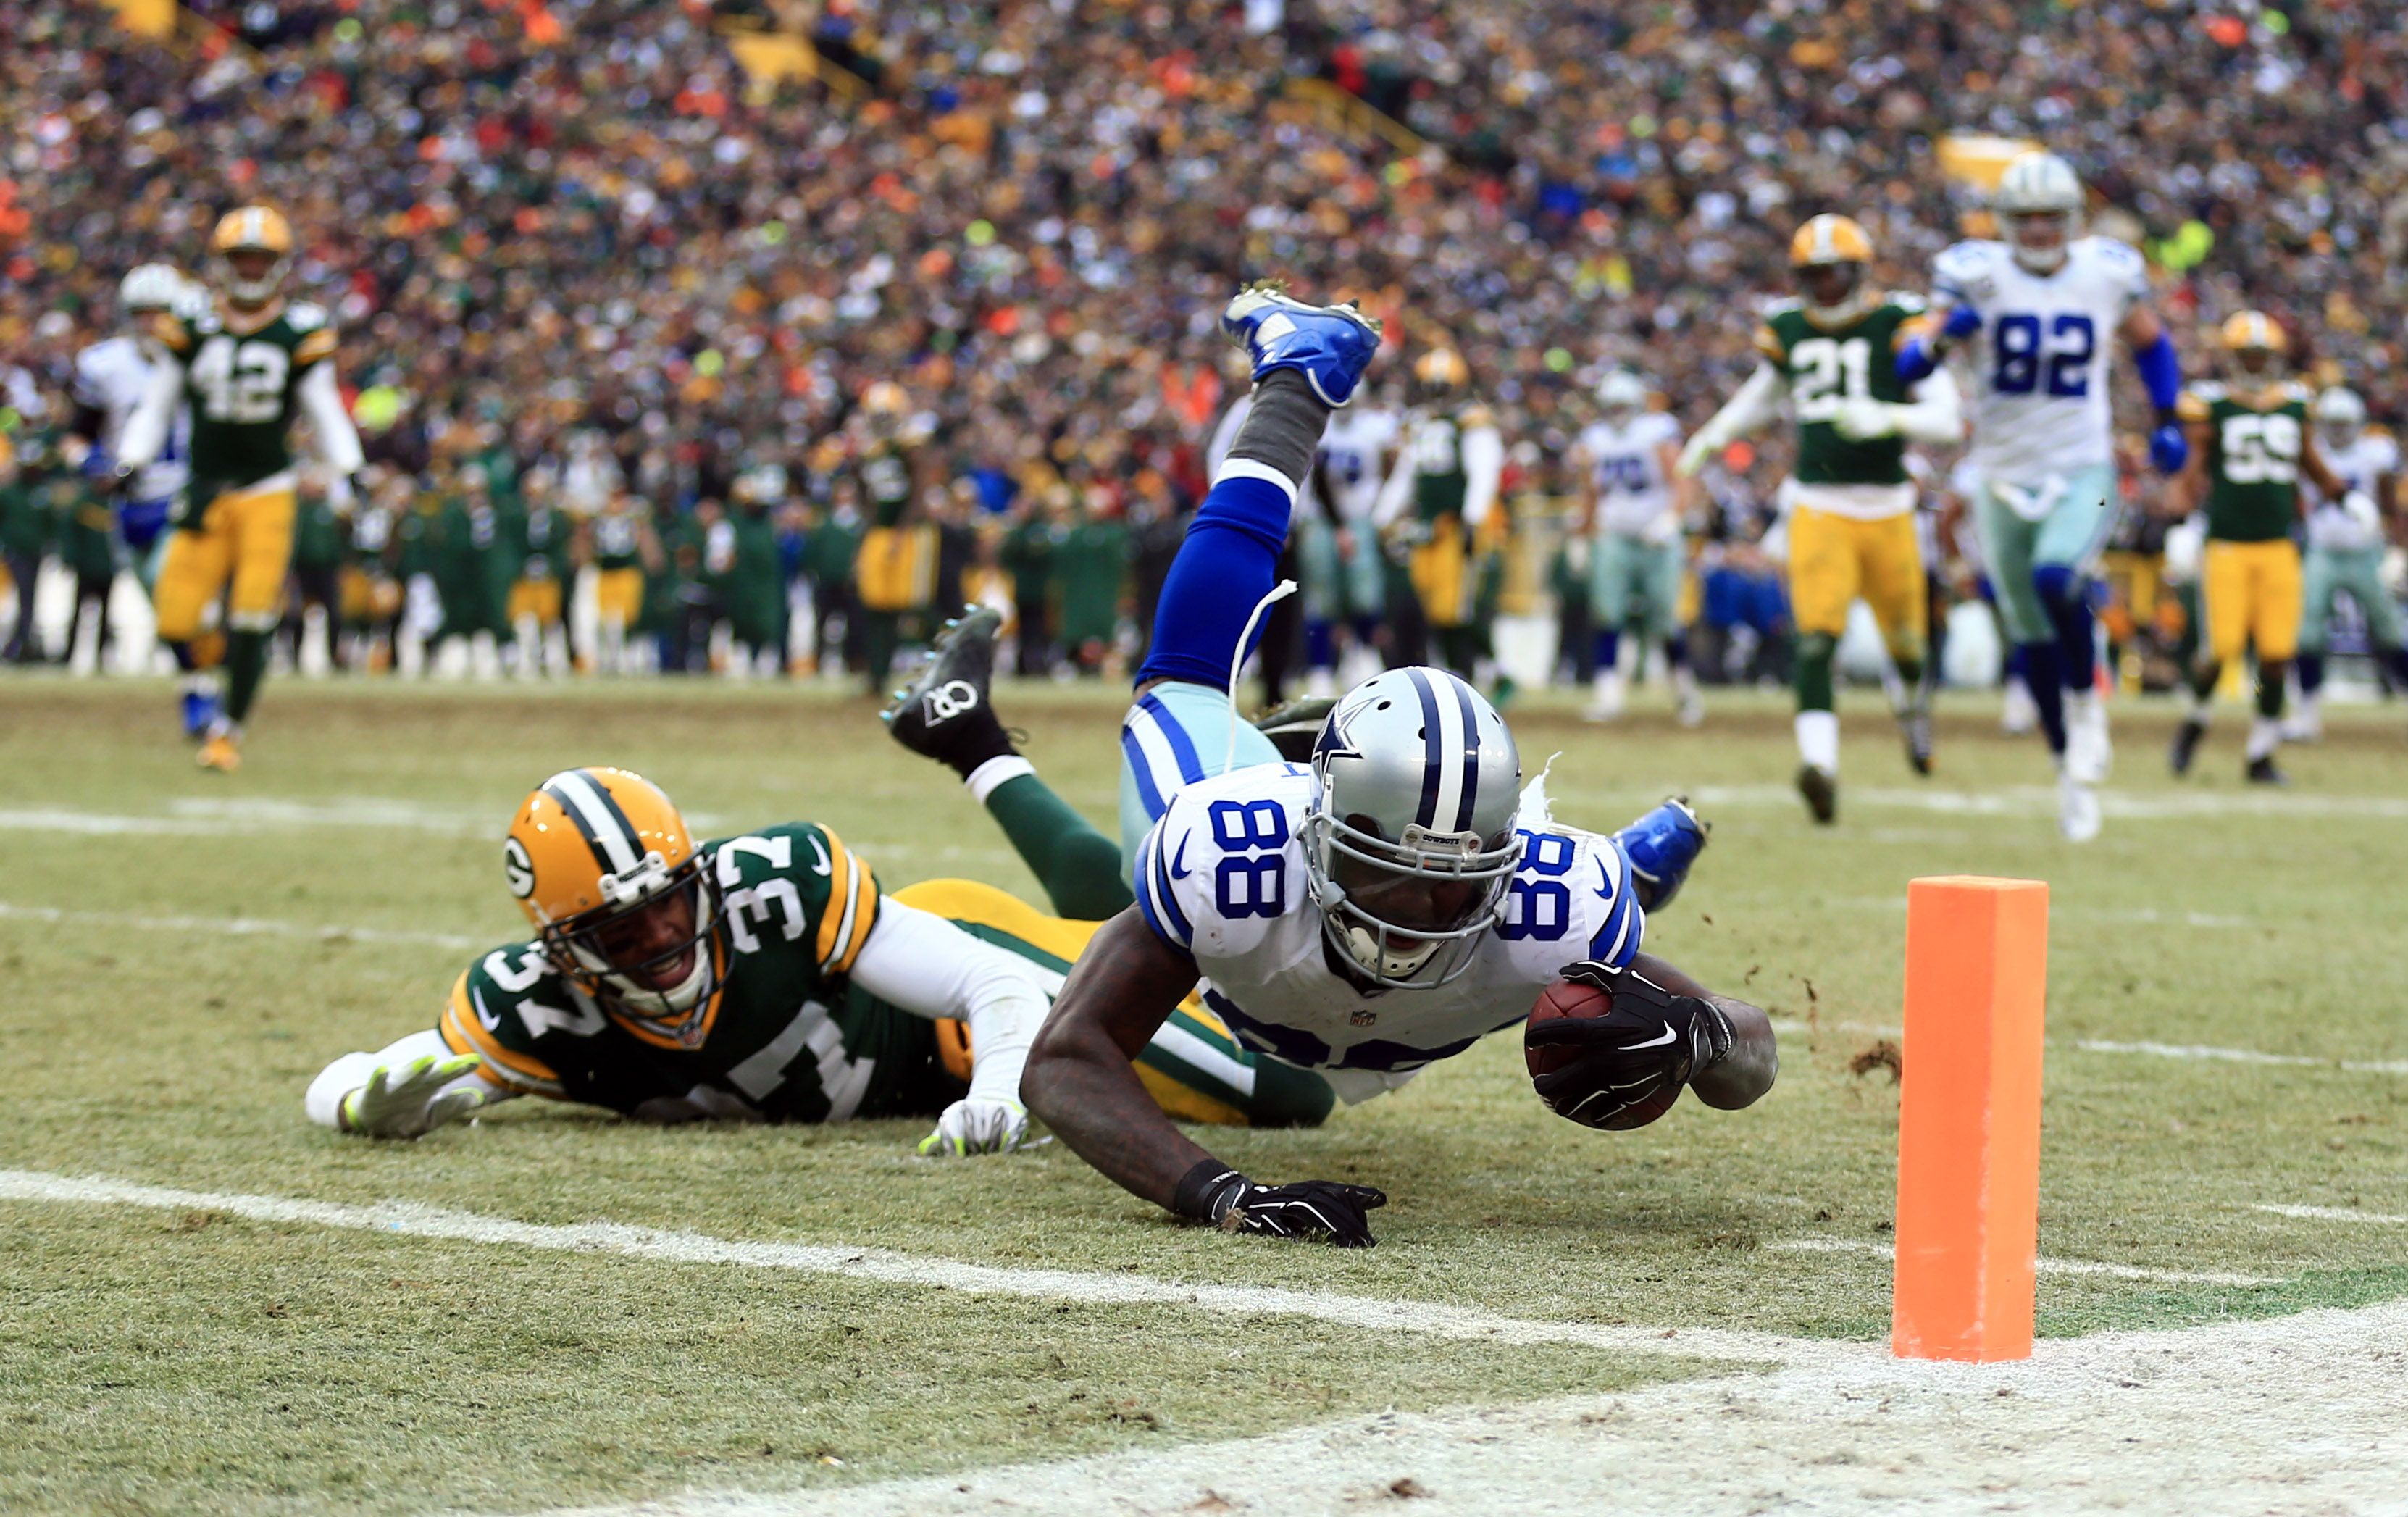 Dez Bryant took 3 steps and no one knows what a catch is